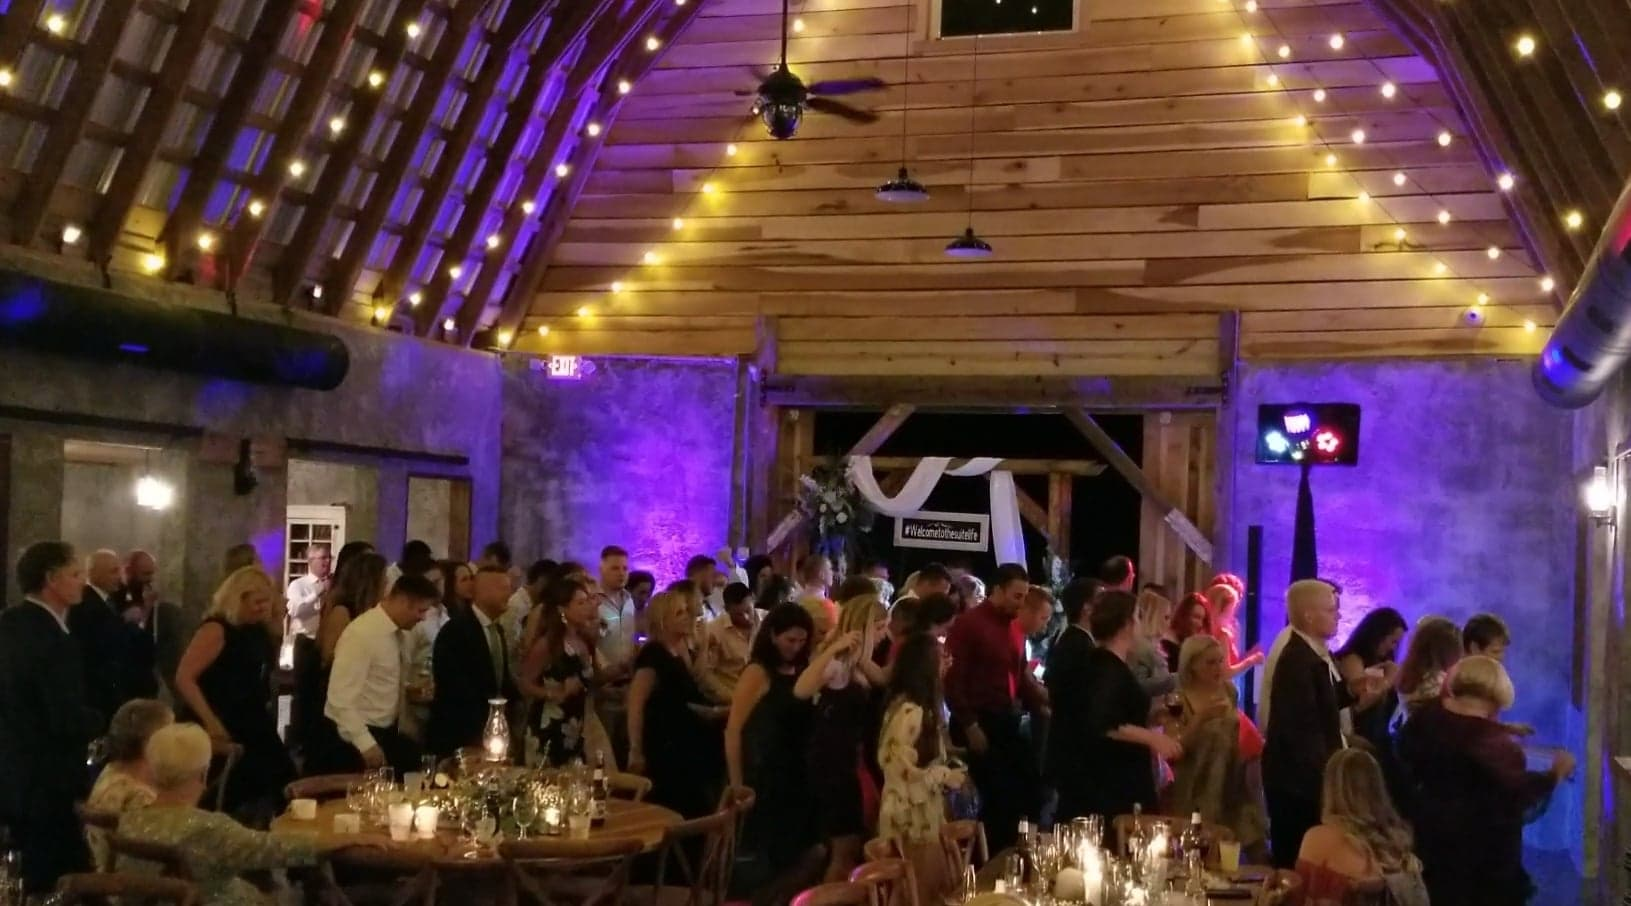 Overlook Barn dancing